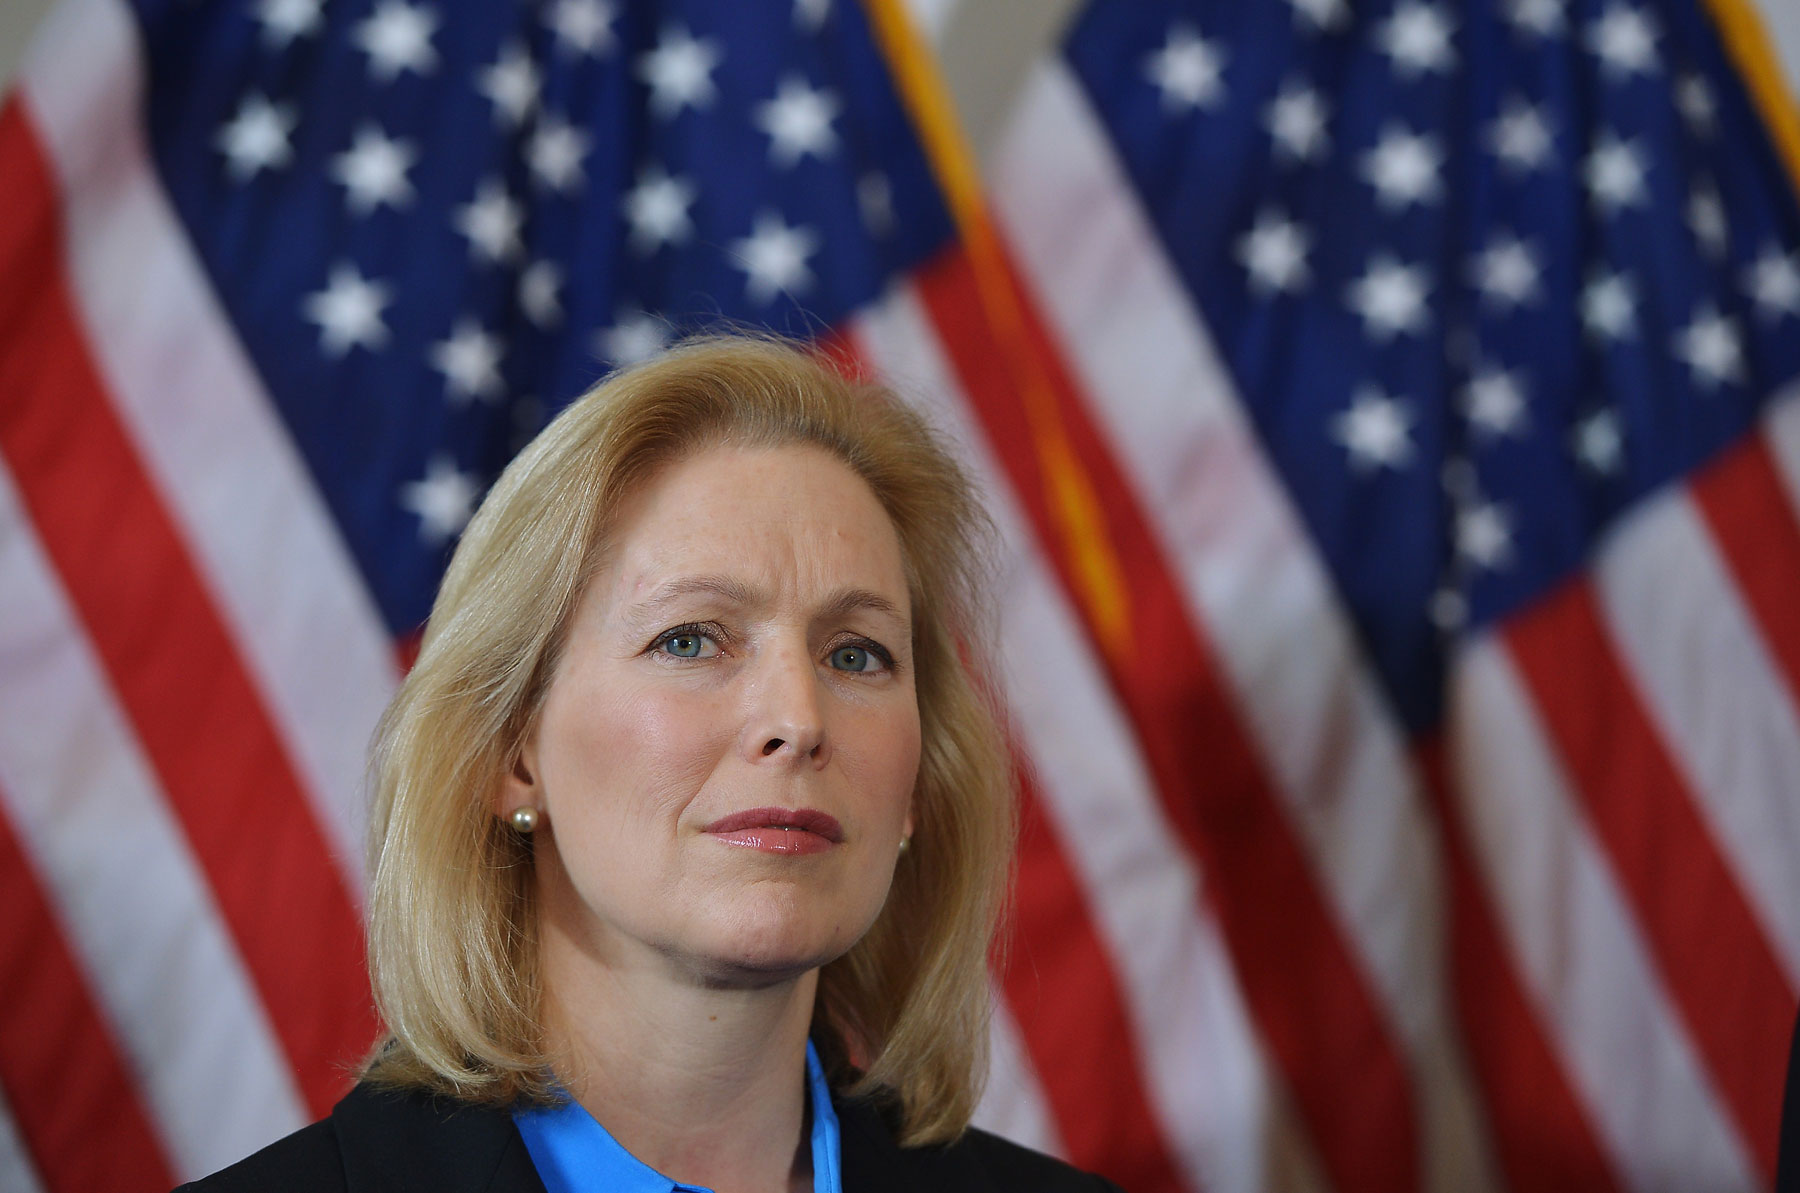 Senator Kirsten Gillibrand attends a press conference on Capitol Hill in Washington, D.C. on Feb. 6, 2014, calling for the creation of an independent military justice system to deal with sexual assault in the military.